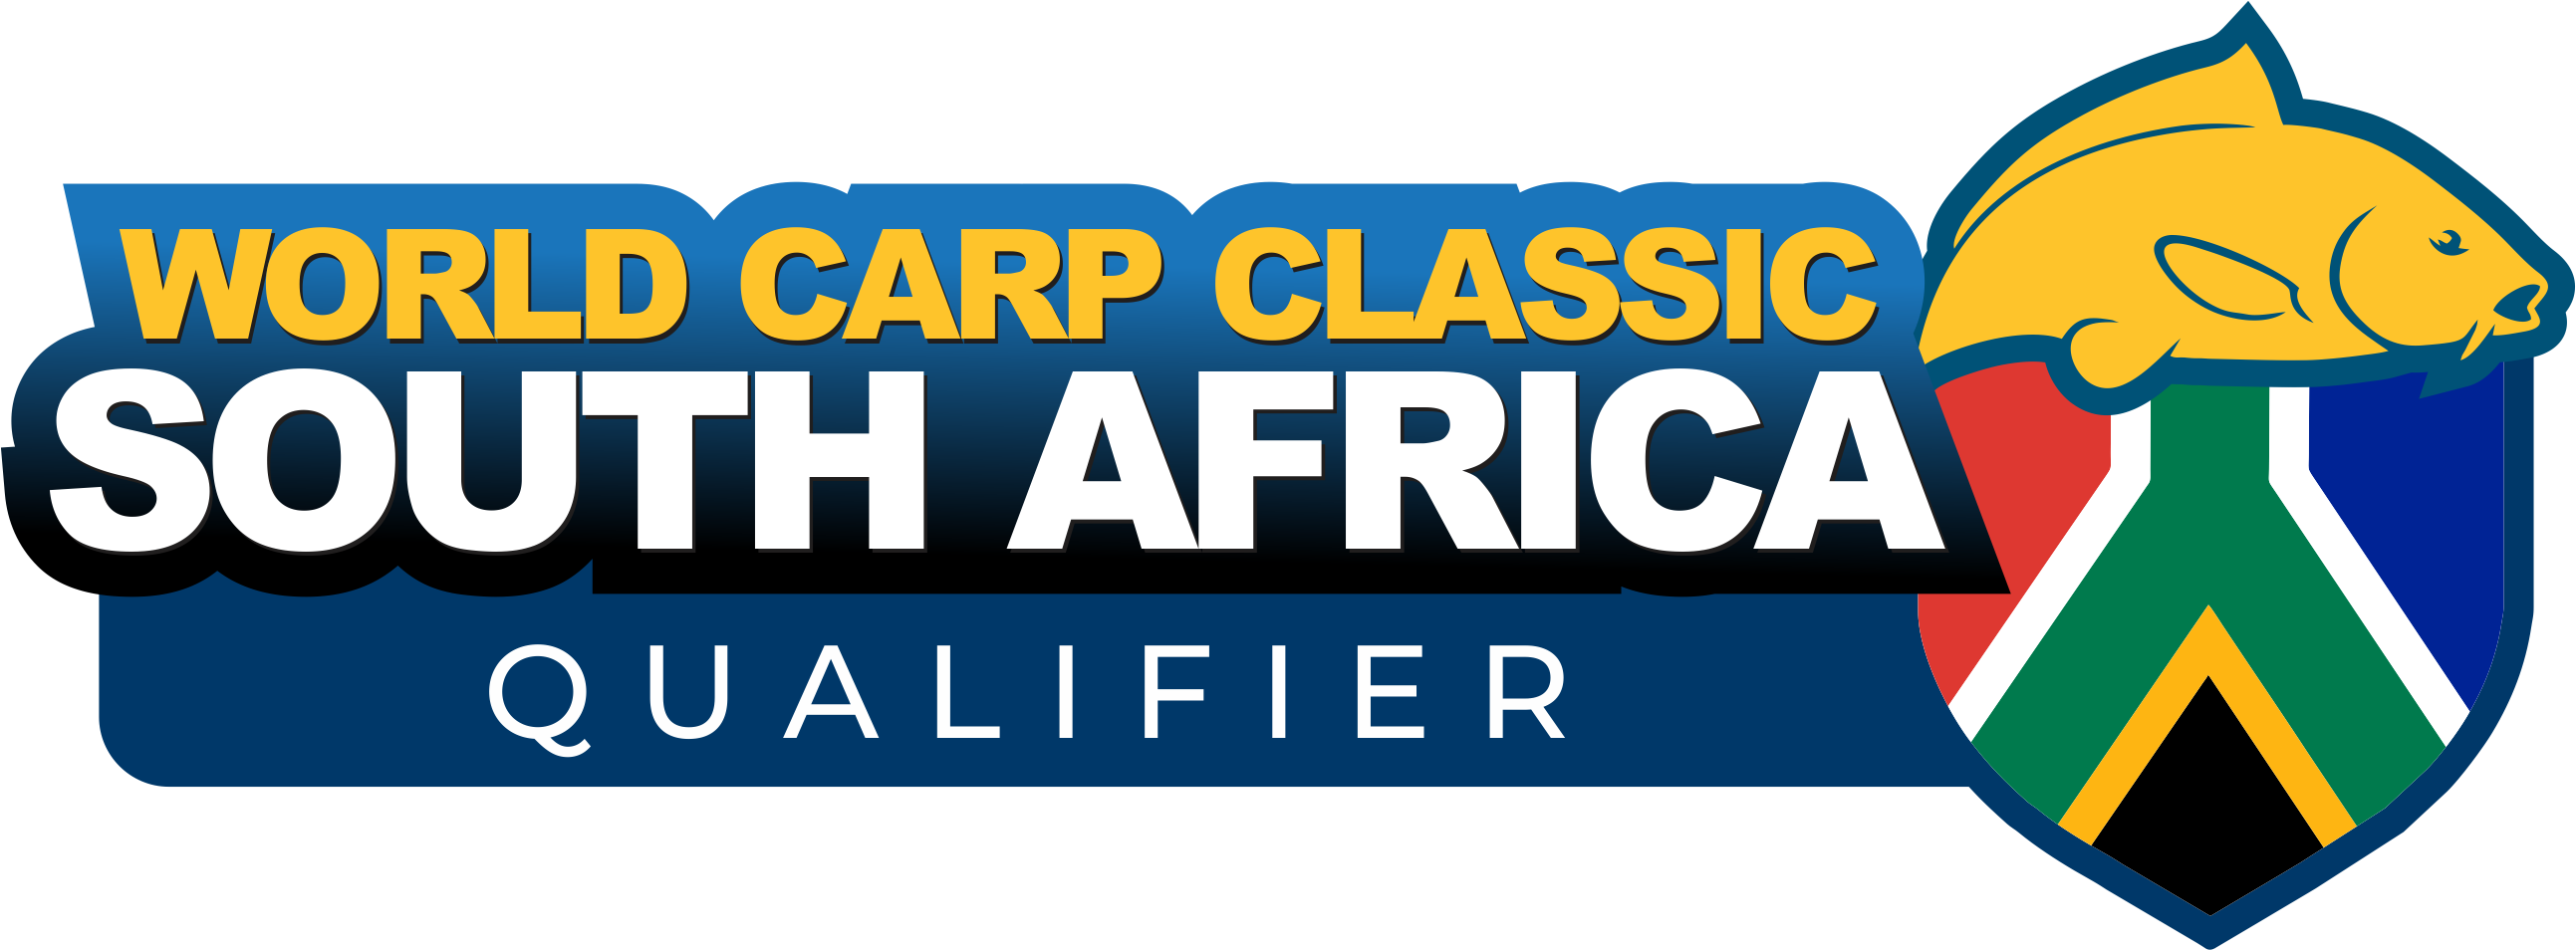 World Carp Classic SA Qualifier